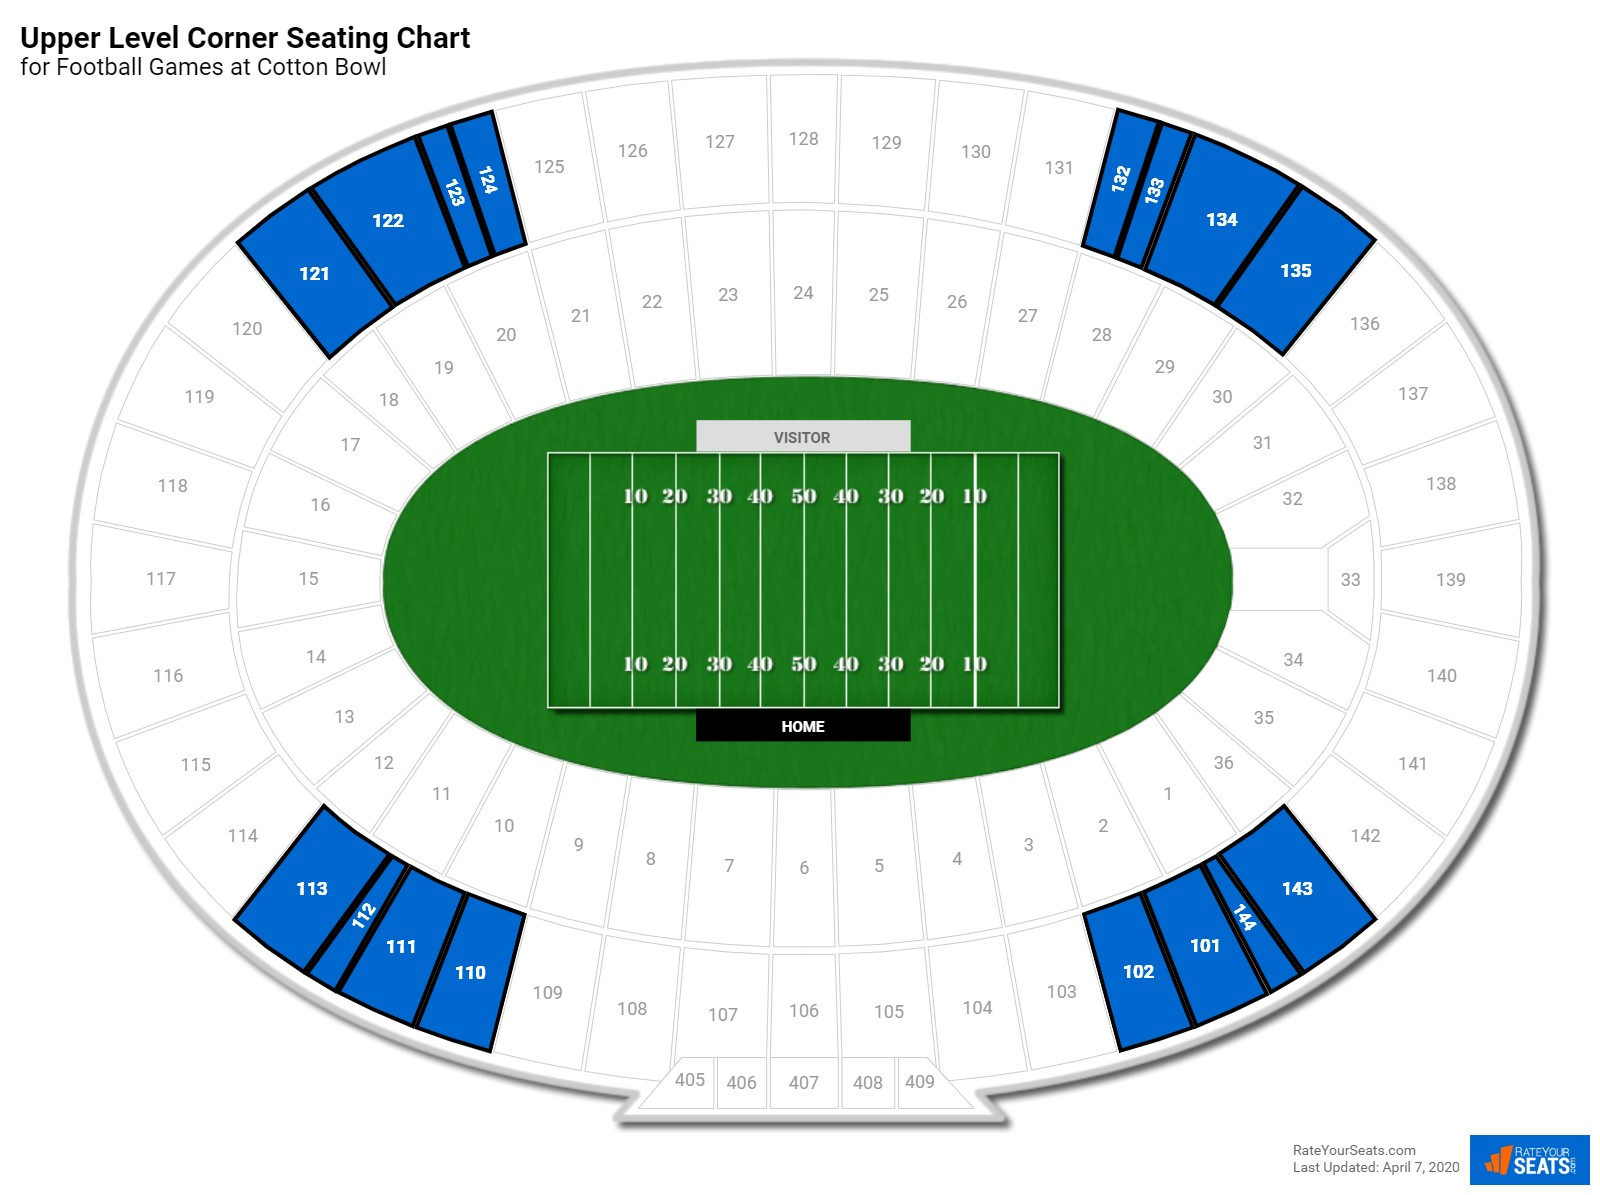 Cotton Bowl Upper Level Corner seating chart